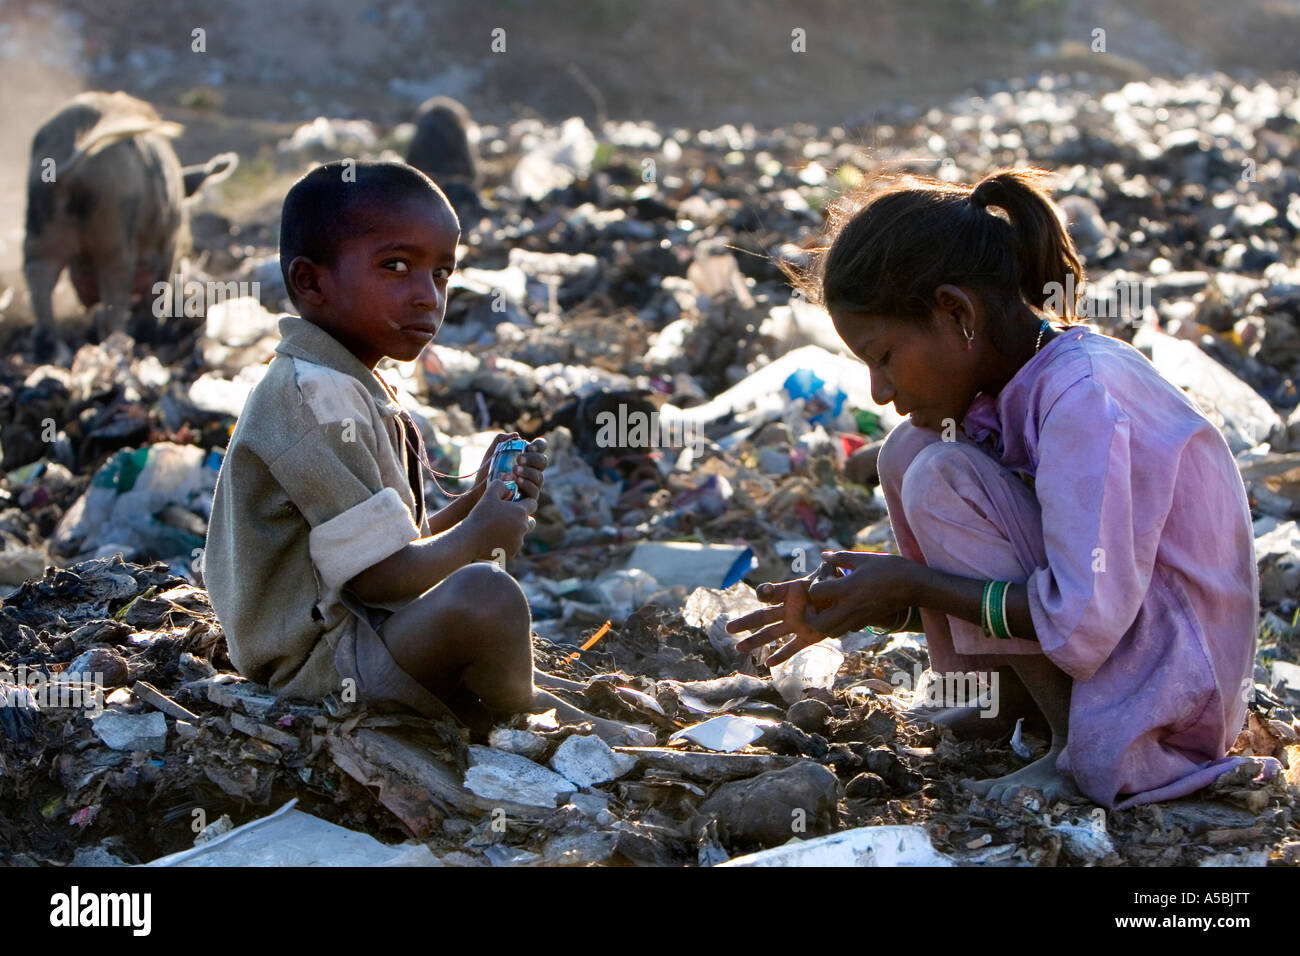 Poor People Toys : Poor indian children playing with toy mobile phone whilst